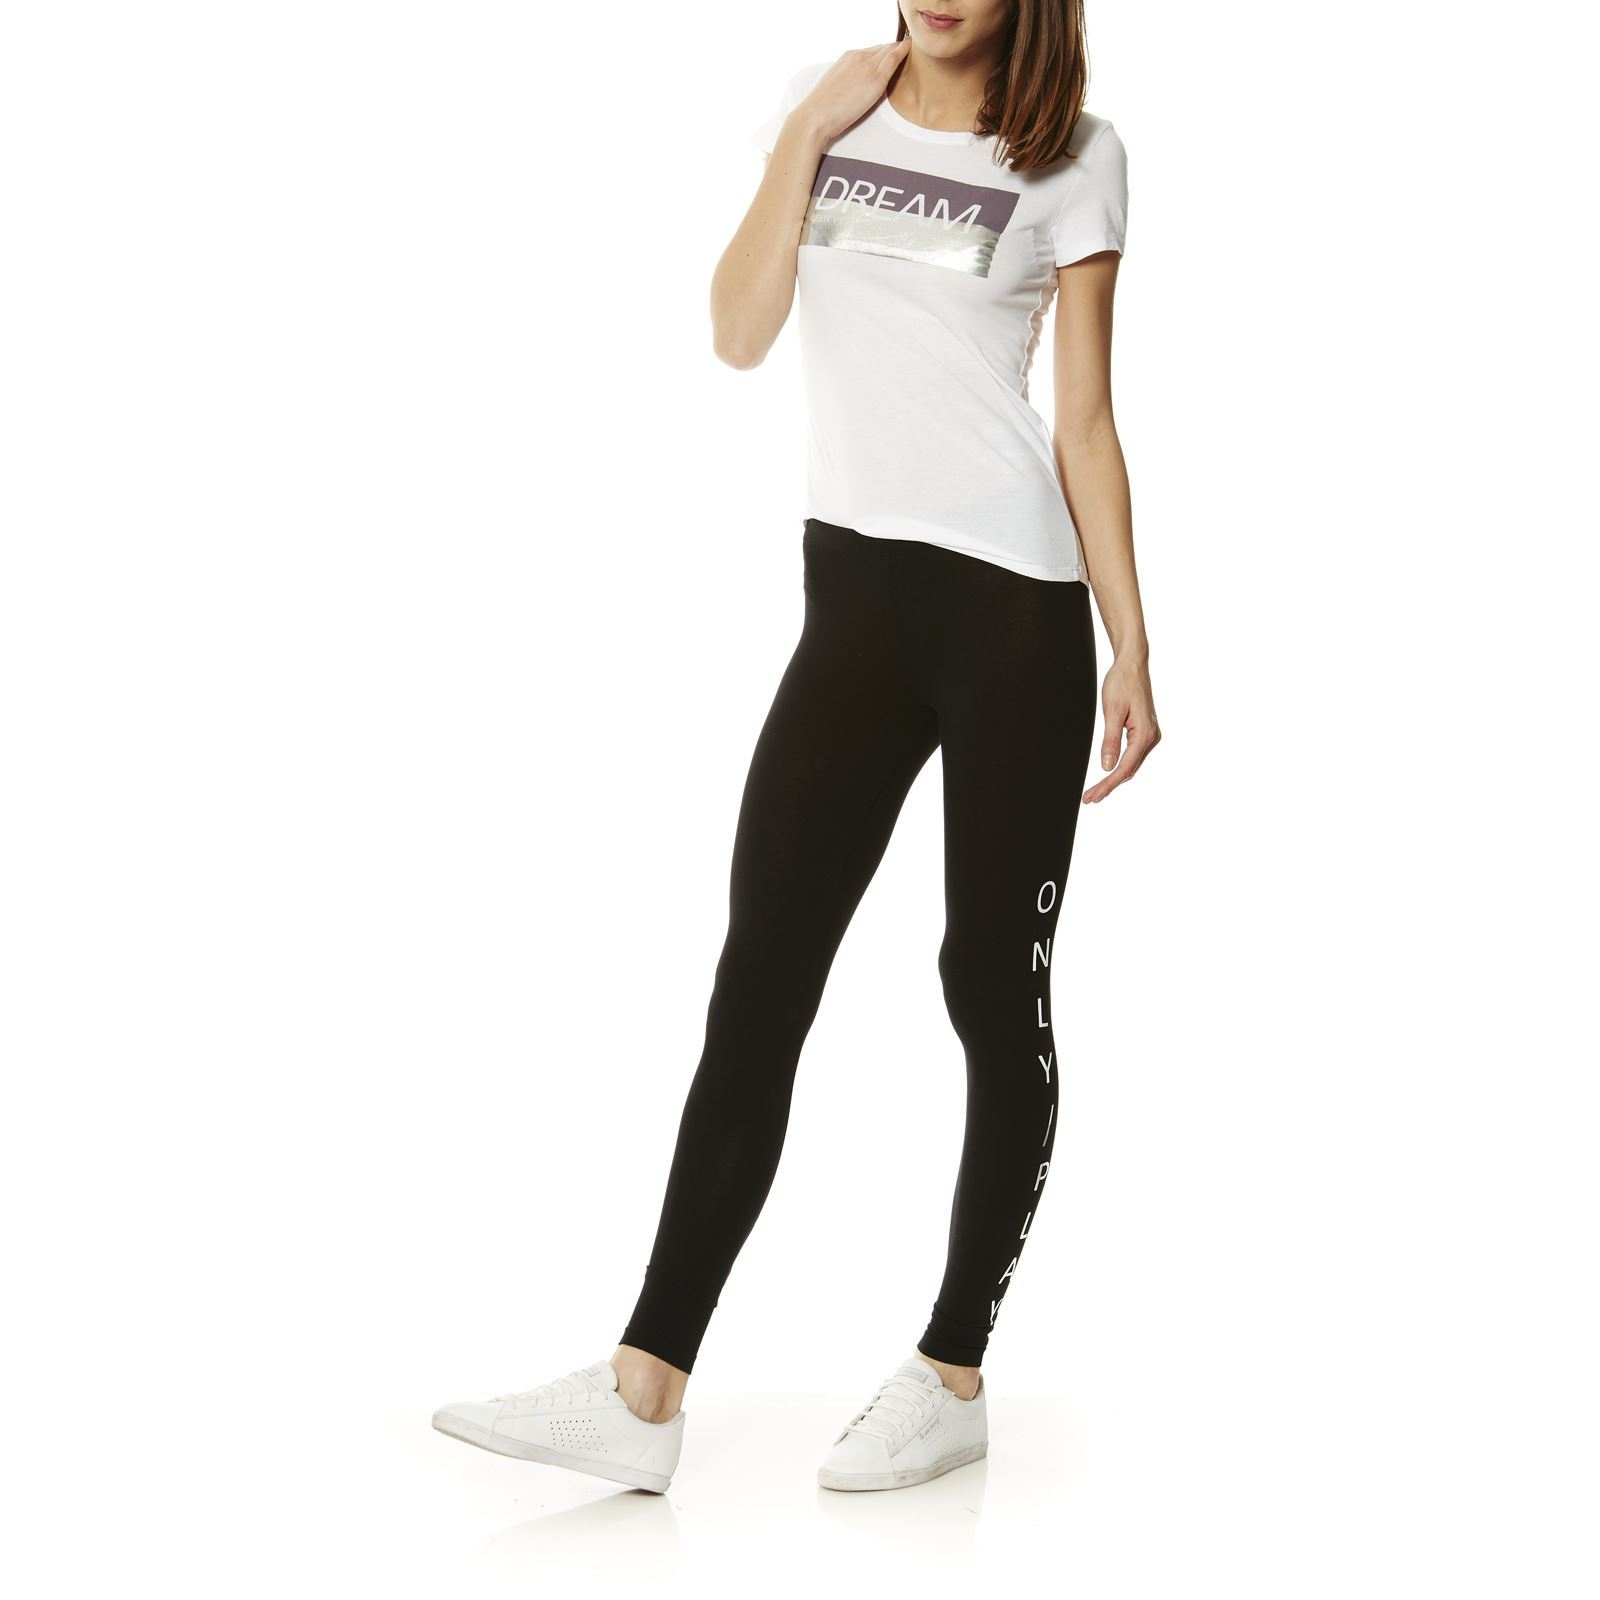 Küche Celina 2017 Only Play Célina Leggings Schwarz Brandalley